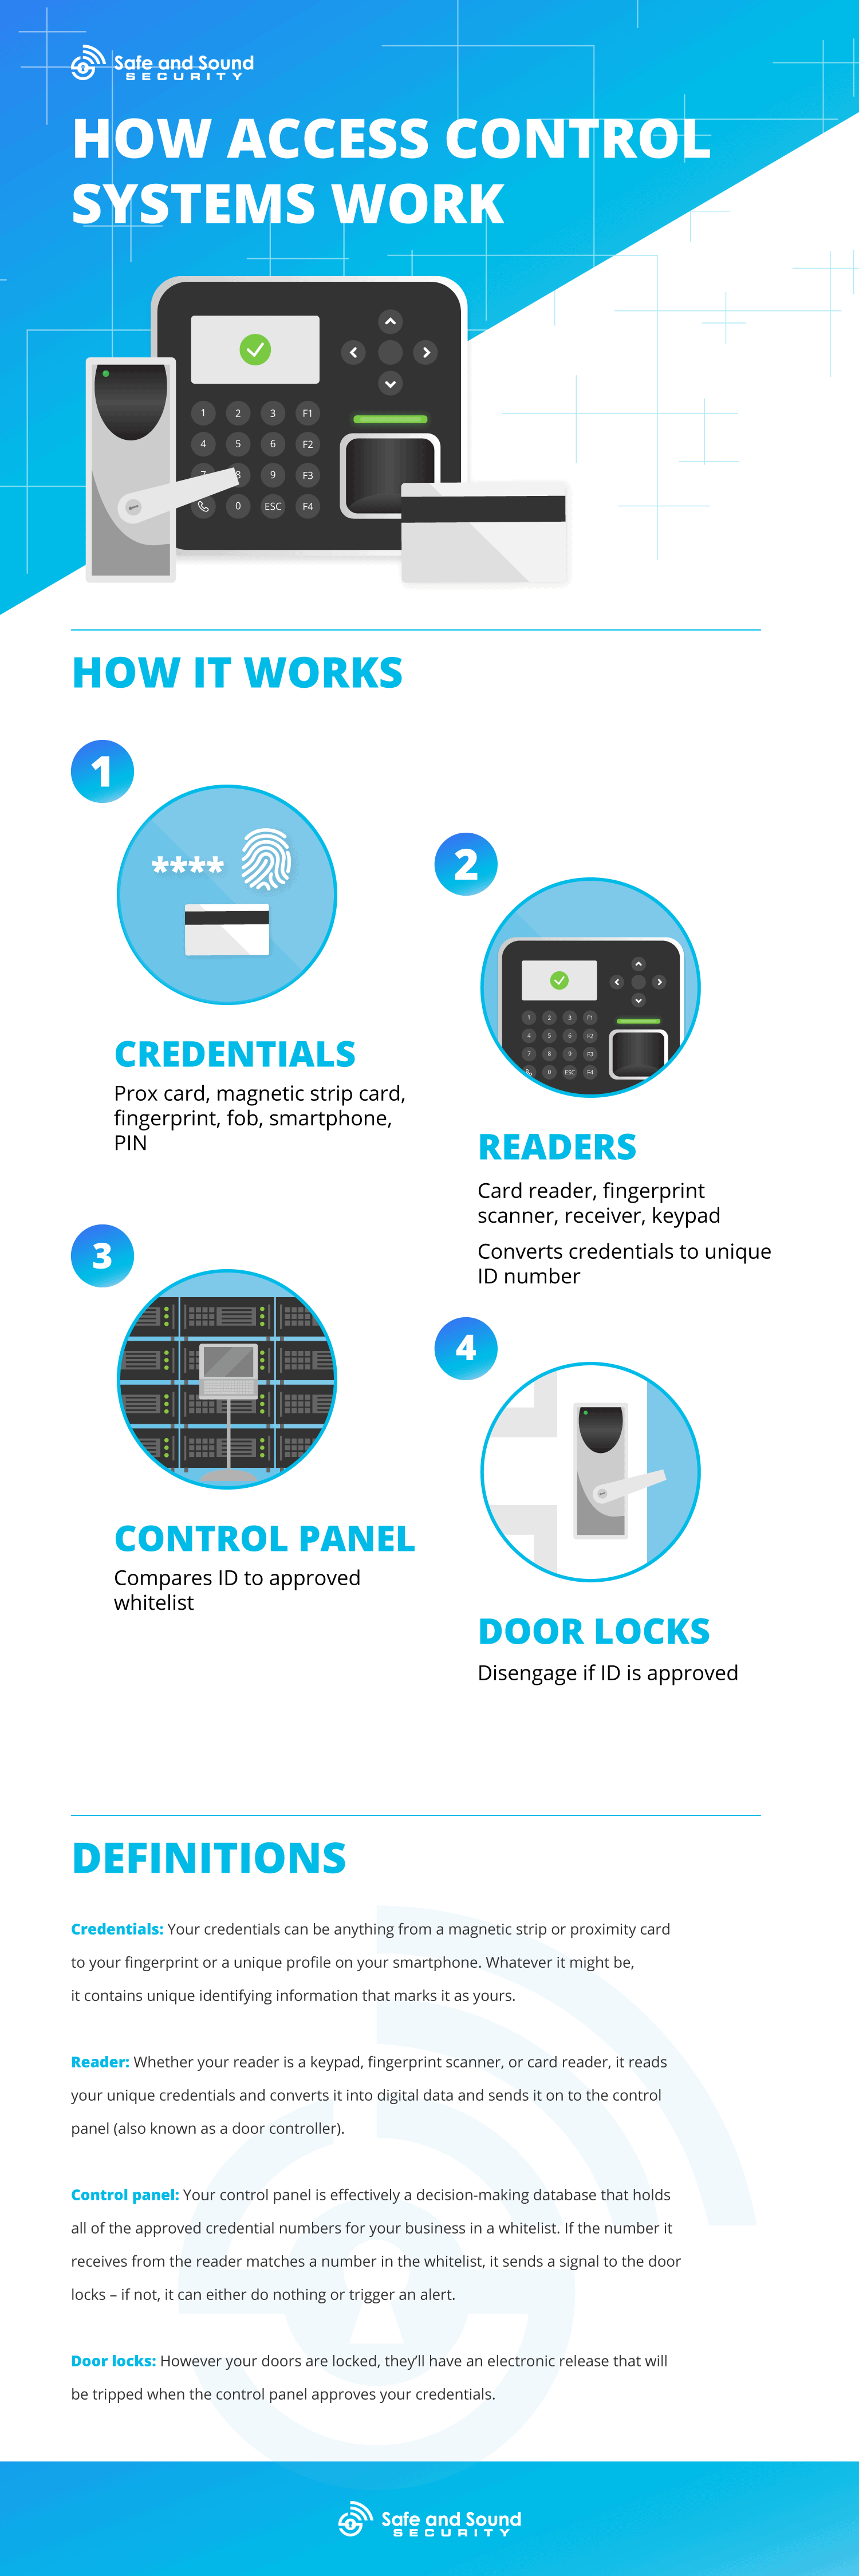 How Access Control Systems Work